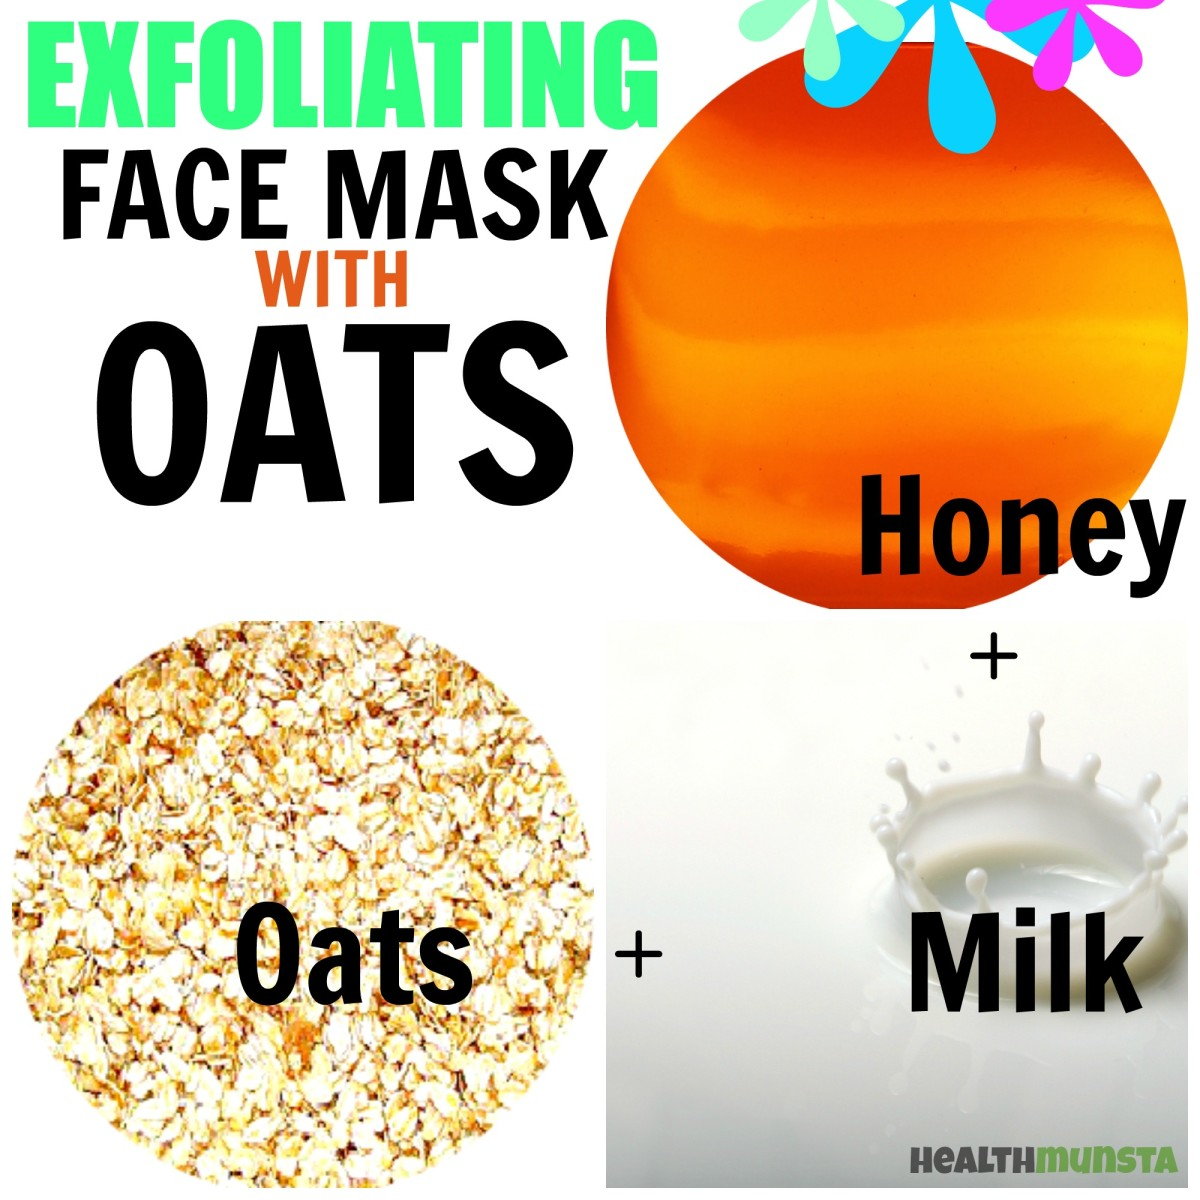 It's Spa Time! Exfoliate dead skin cells with a simple oats face mask containing honey and milk.